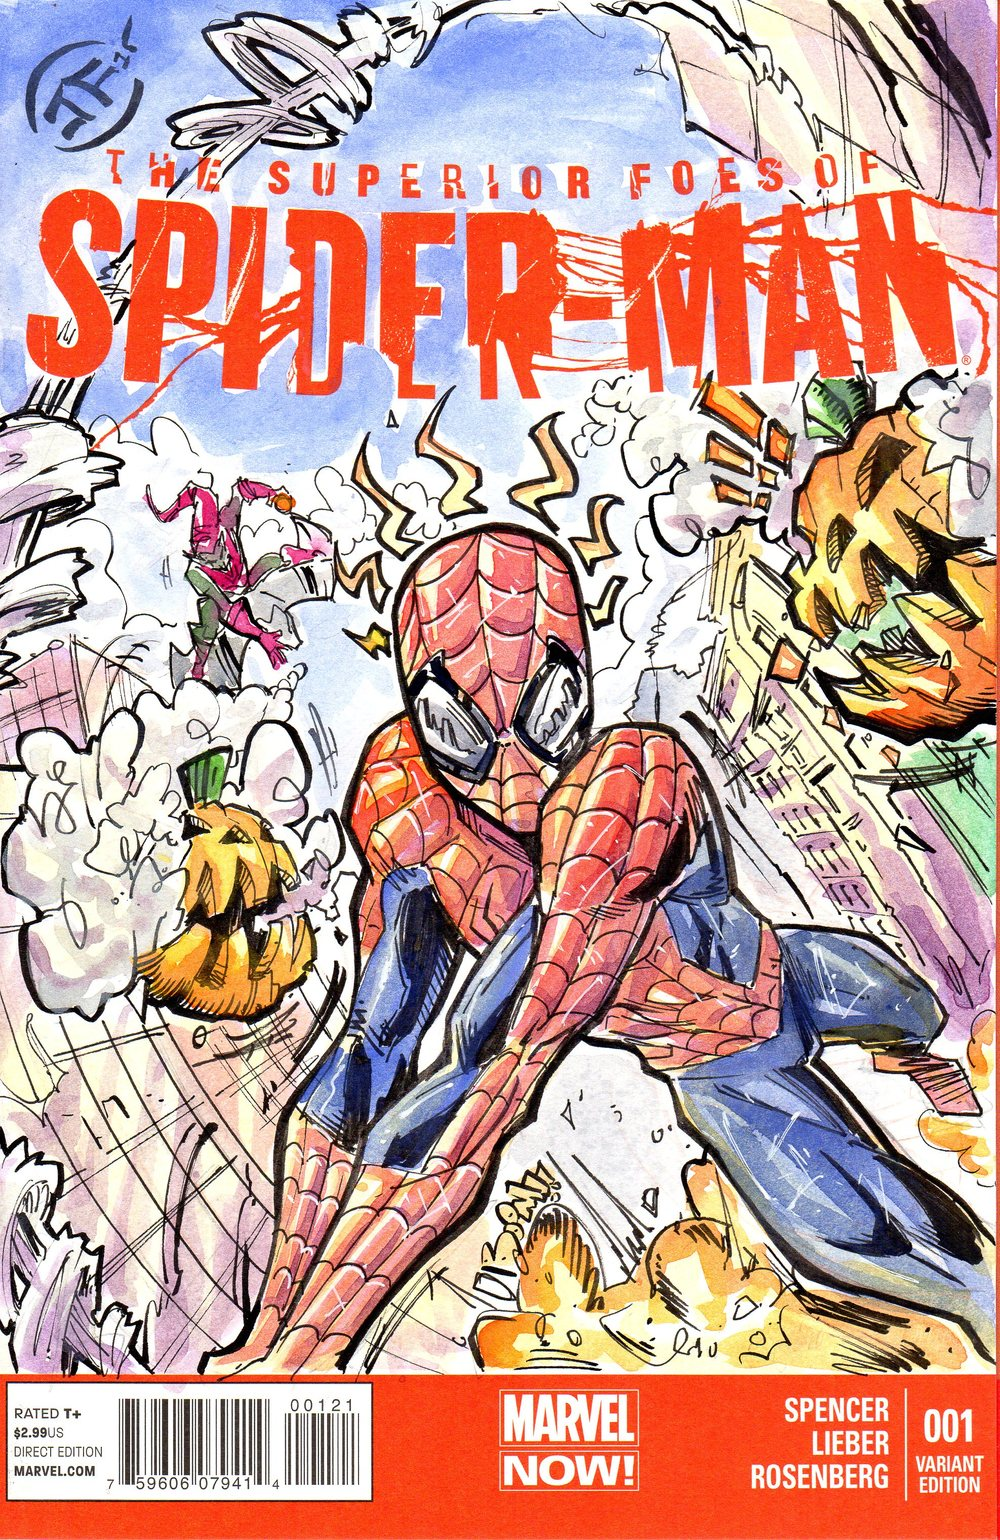 Spiderman Watercolored